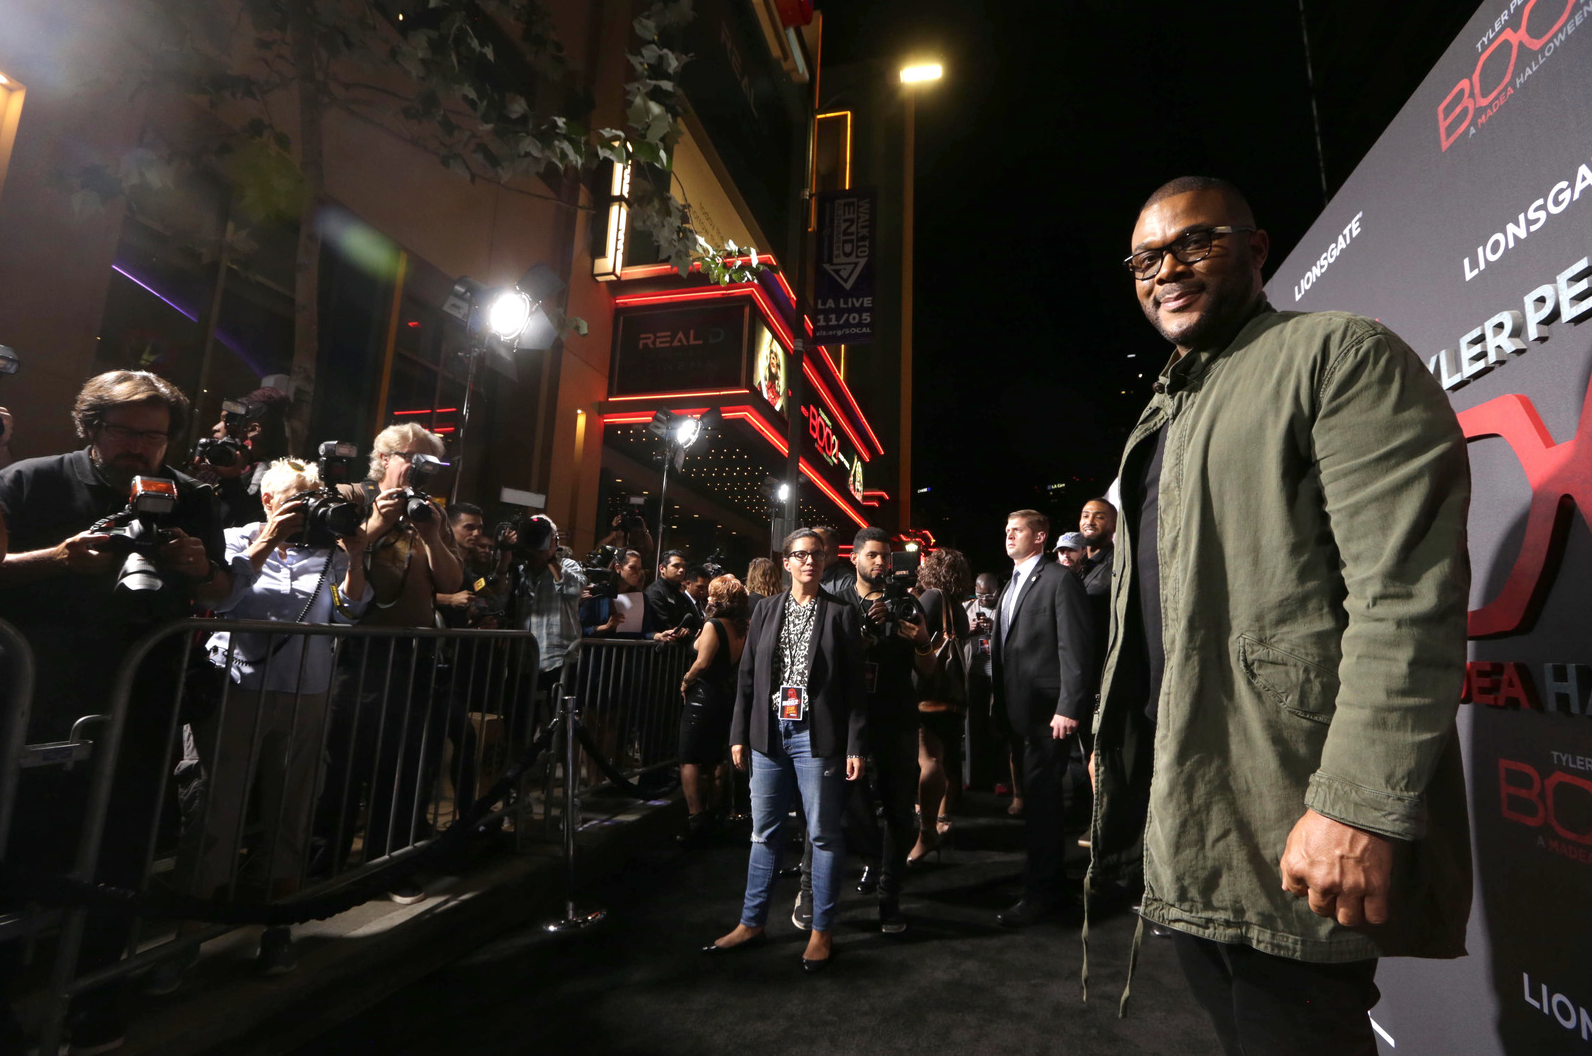 Tyler Perry » Boo2! premieres in LA with red carpet dazzle